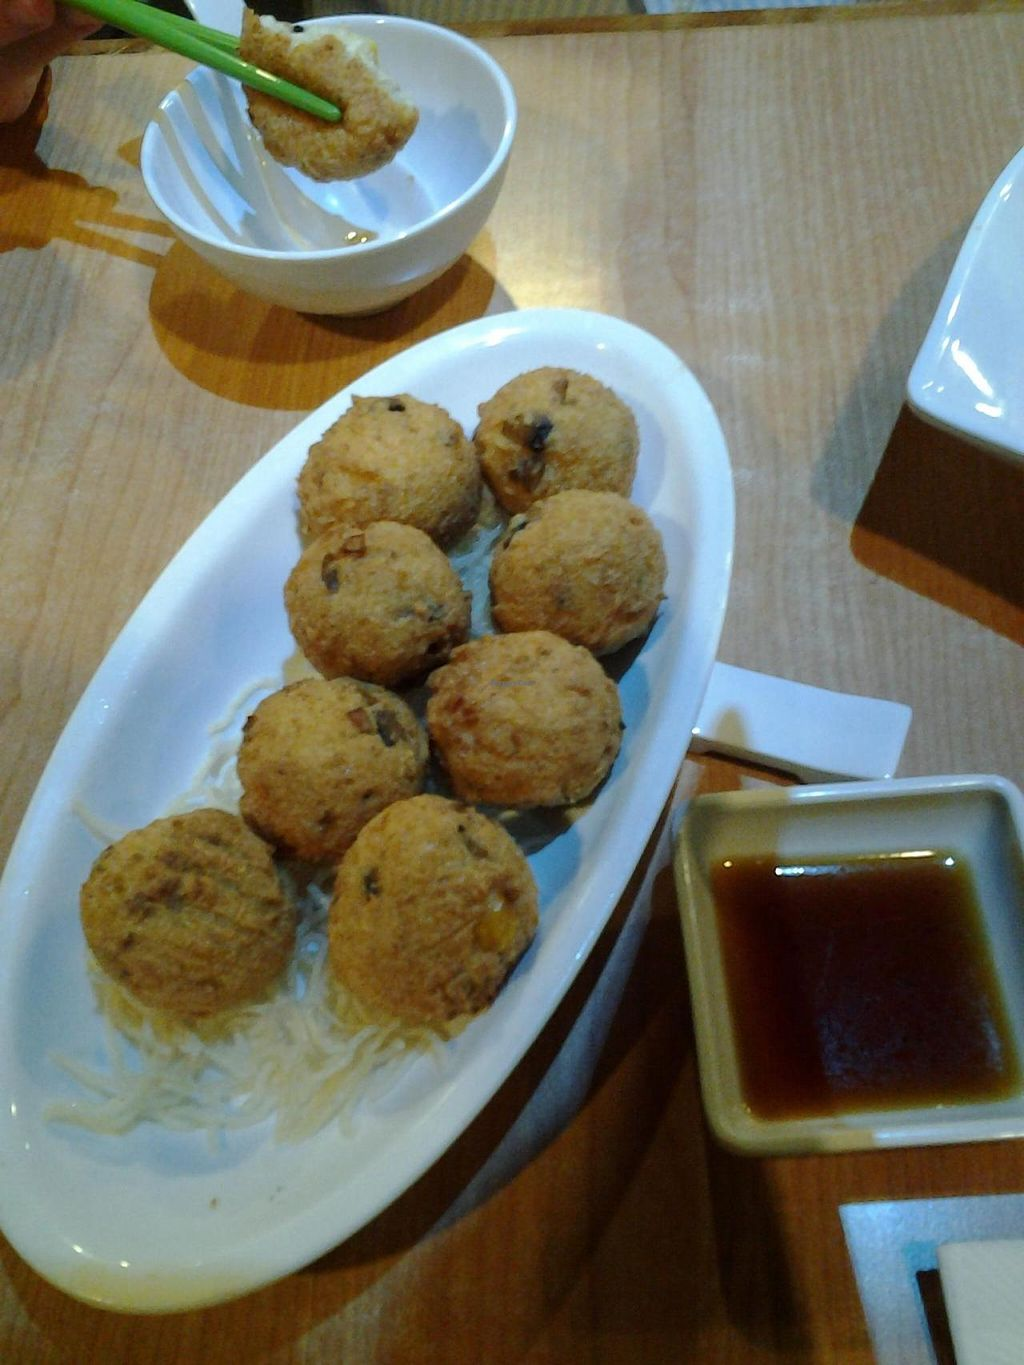 """Photo of Happy Veggies - Wanchai  by <a href=""""/members/profile/mrrfrost"""">mrrfrost</a> <br/>Salt and pepper tofu balls! <br/> October 13, 2014  - <a href='/contact/abuse/image/25649/82763'>Report</a>"""